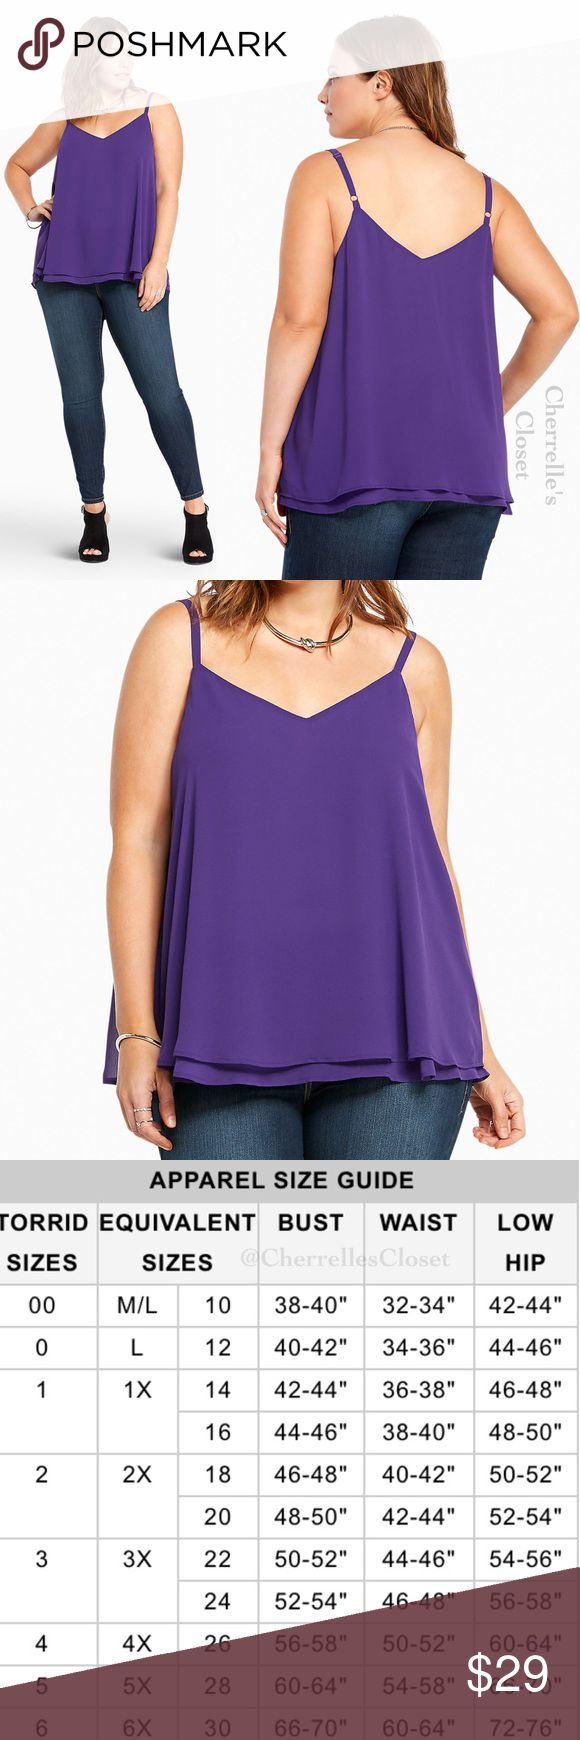 Torrid Double Layered Chiffon Cami Plus Size 5X This deep purple cami is working double time with a sexy v-cut front and back. Cut with two floaty, semi-sheer, and swingy chiffon layers, this cami is a dressy upgrade from your everyday tanks. Polyester torrid Tops